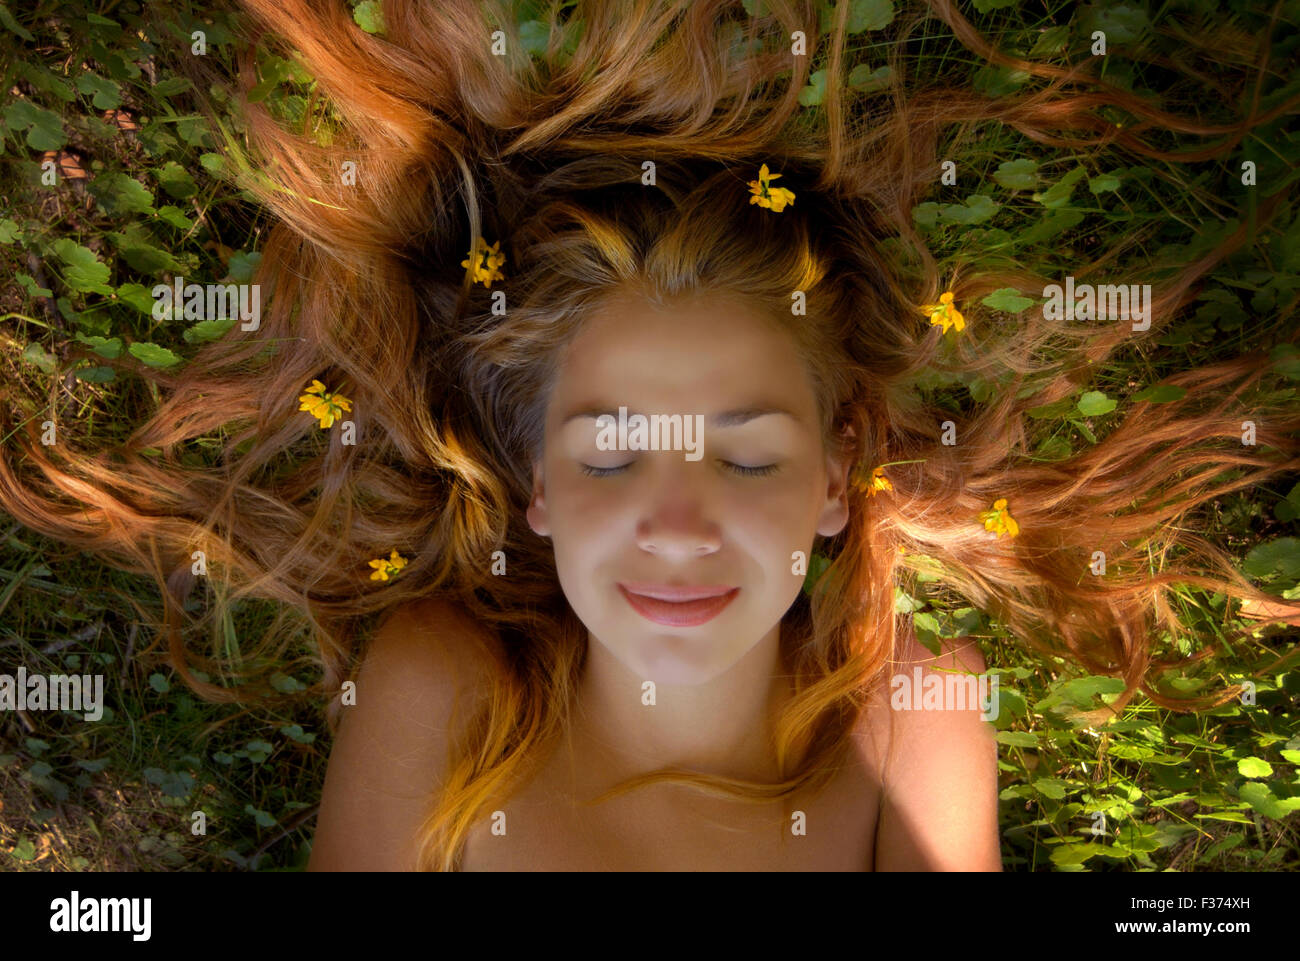 beautiful girl blonde long hair in the grass with flowers in her head - Stock Image